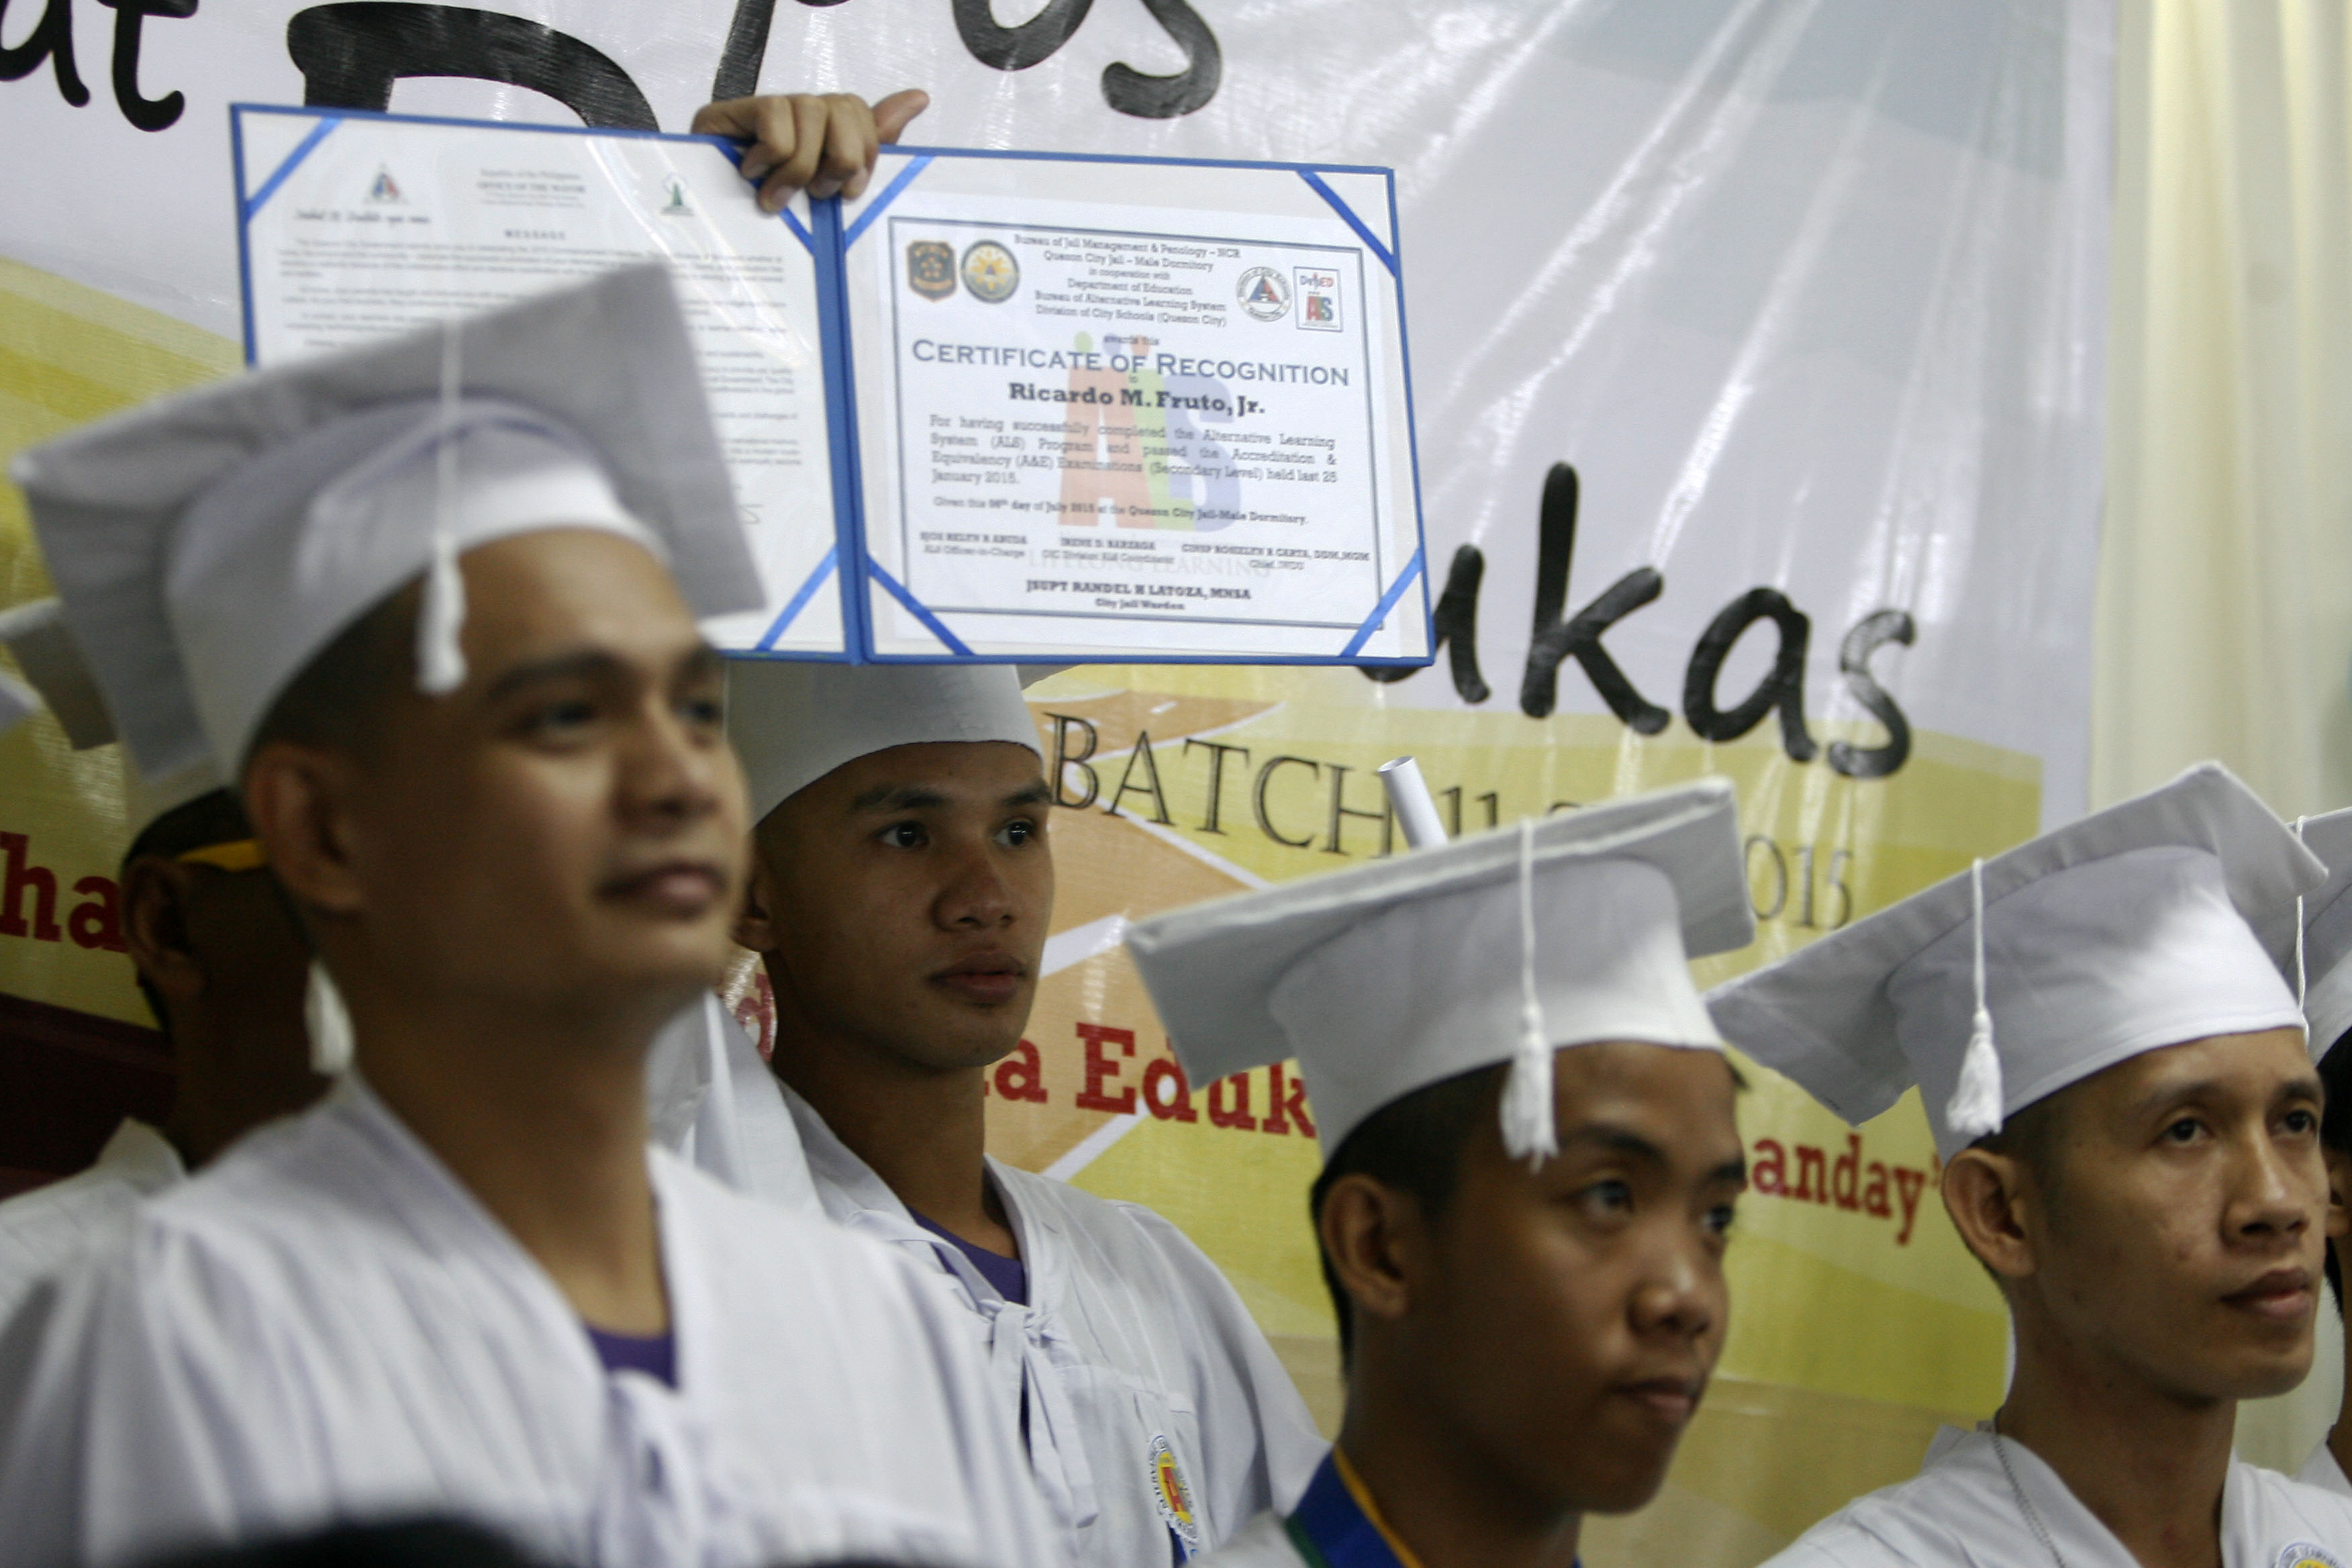 A detainee proudly shows his certificate of recognition during their graduation at the Alternative Learning System (ALS) program of the Department of Education inside the Quezon City Jail.